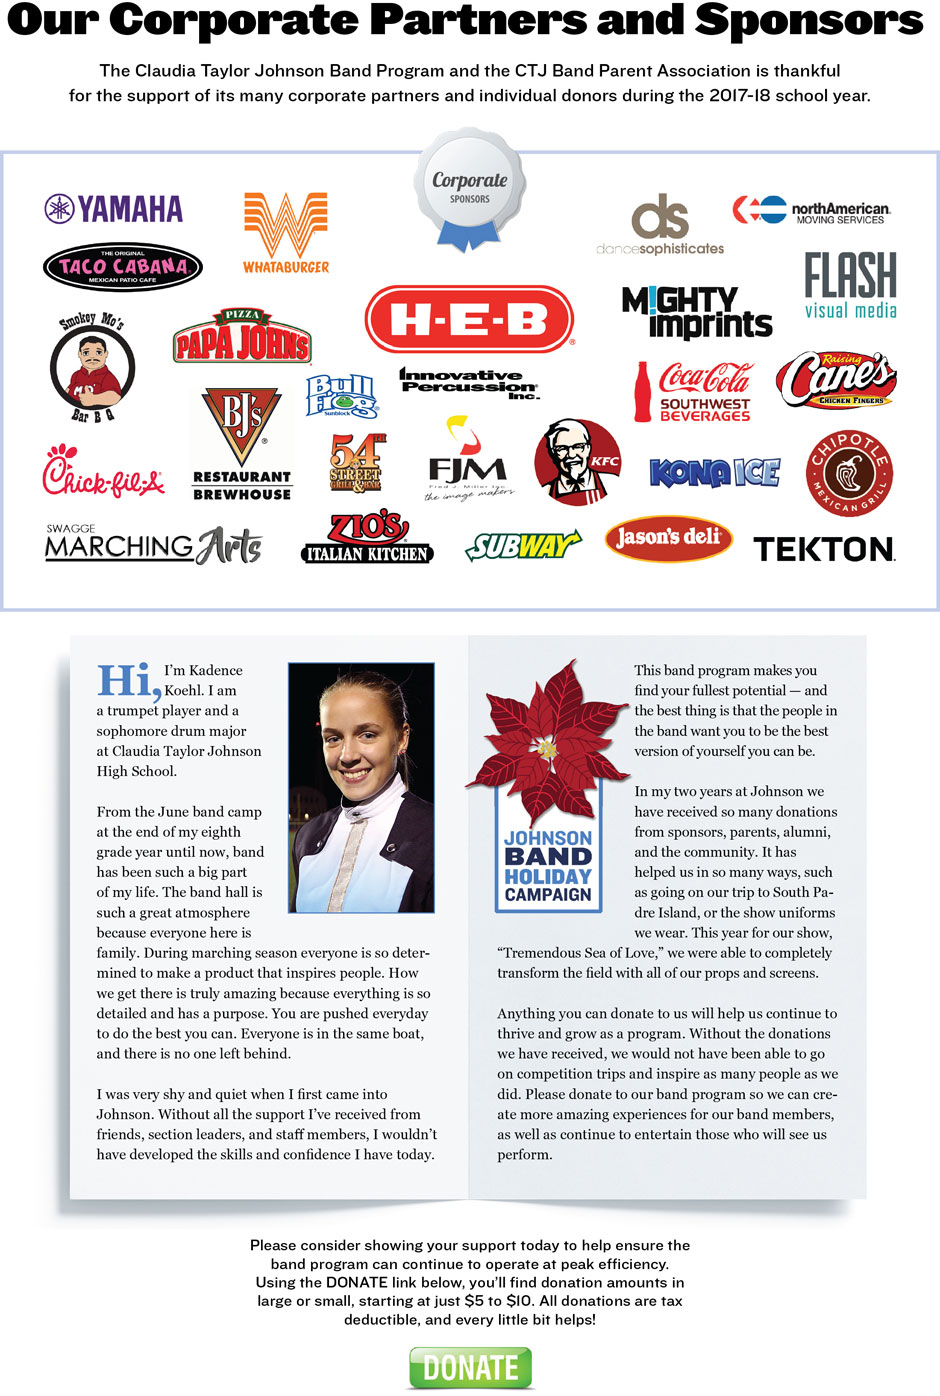 CTJ Sponsors and the Johnson Holiday Campaign